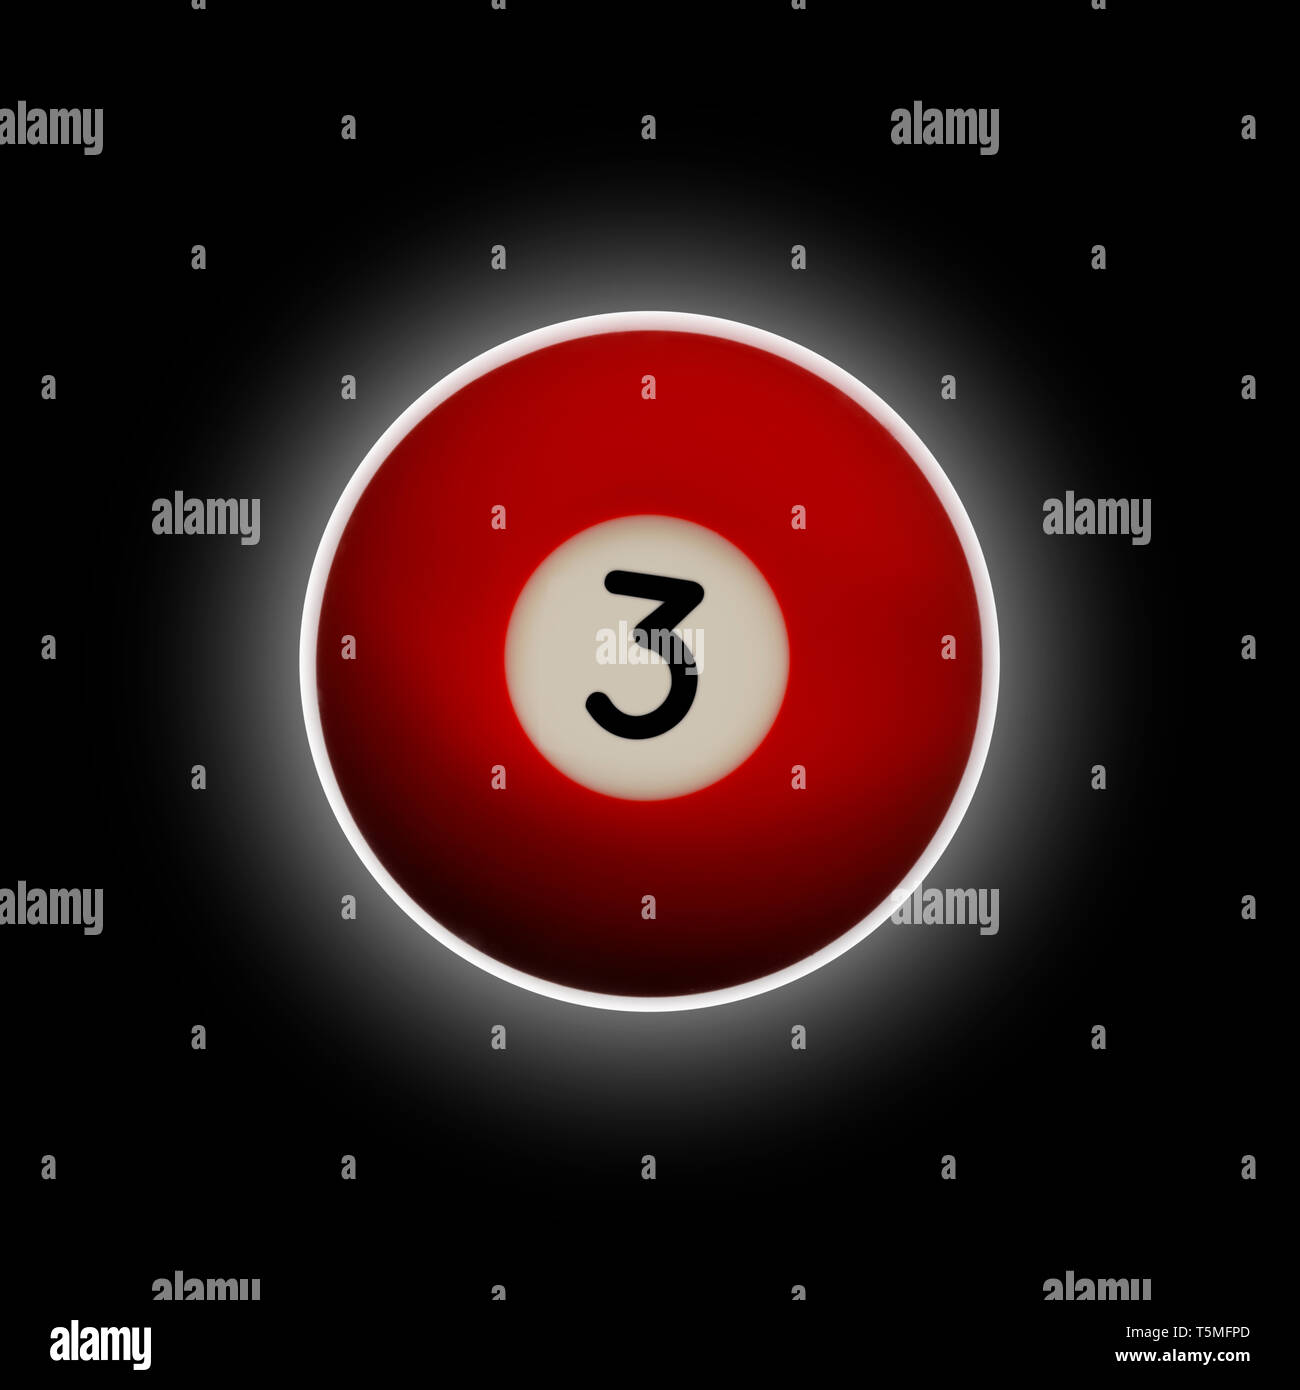 Red number 3 pool ball on a black background with halo effect behind it - Stock Image